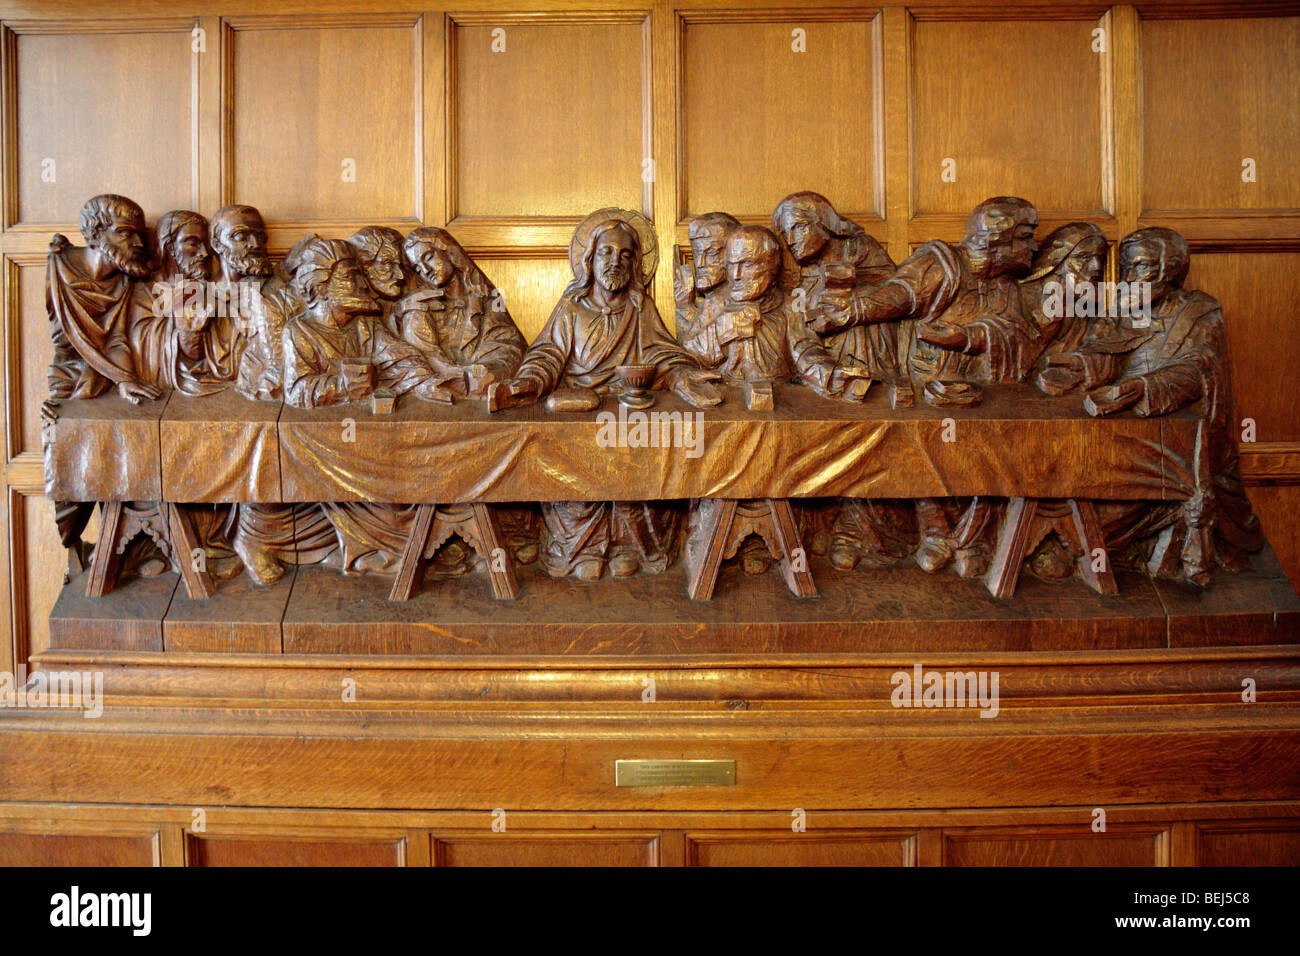 A large wooden carving of jesus and the last supper on display at